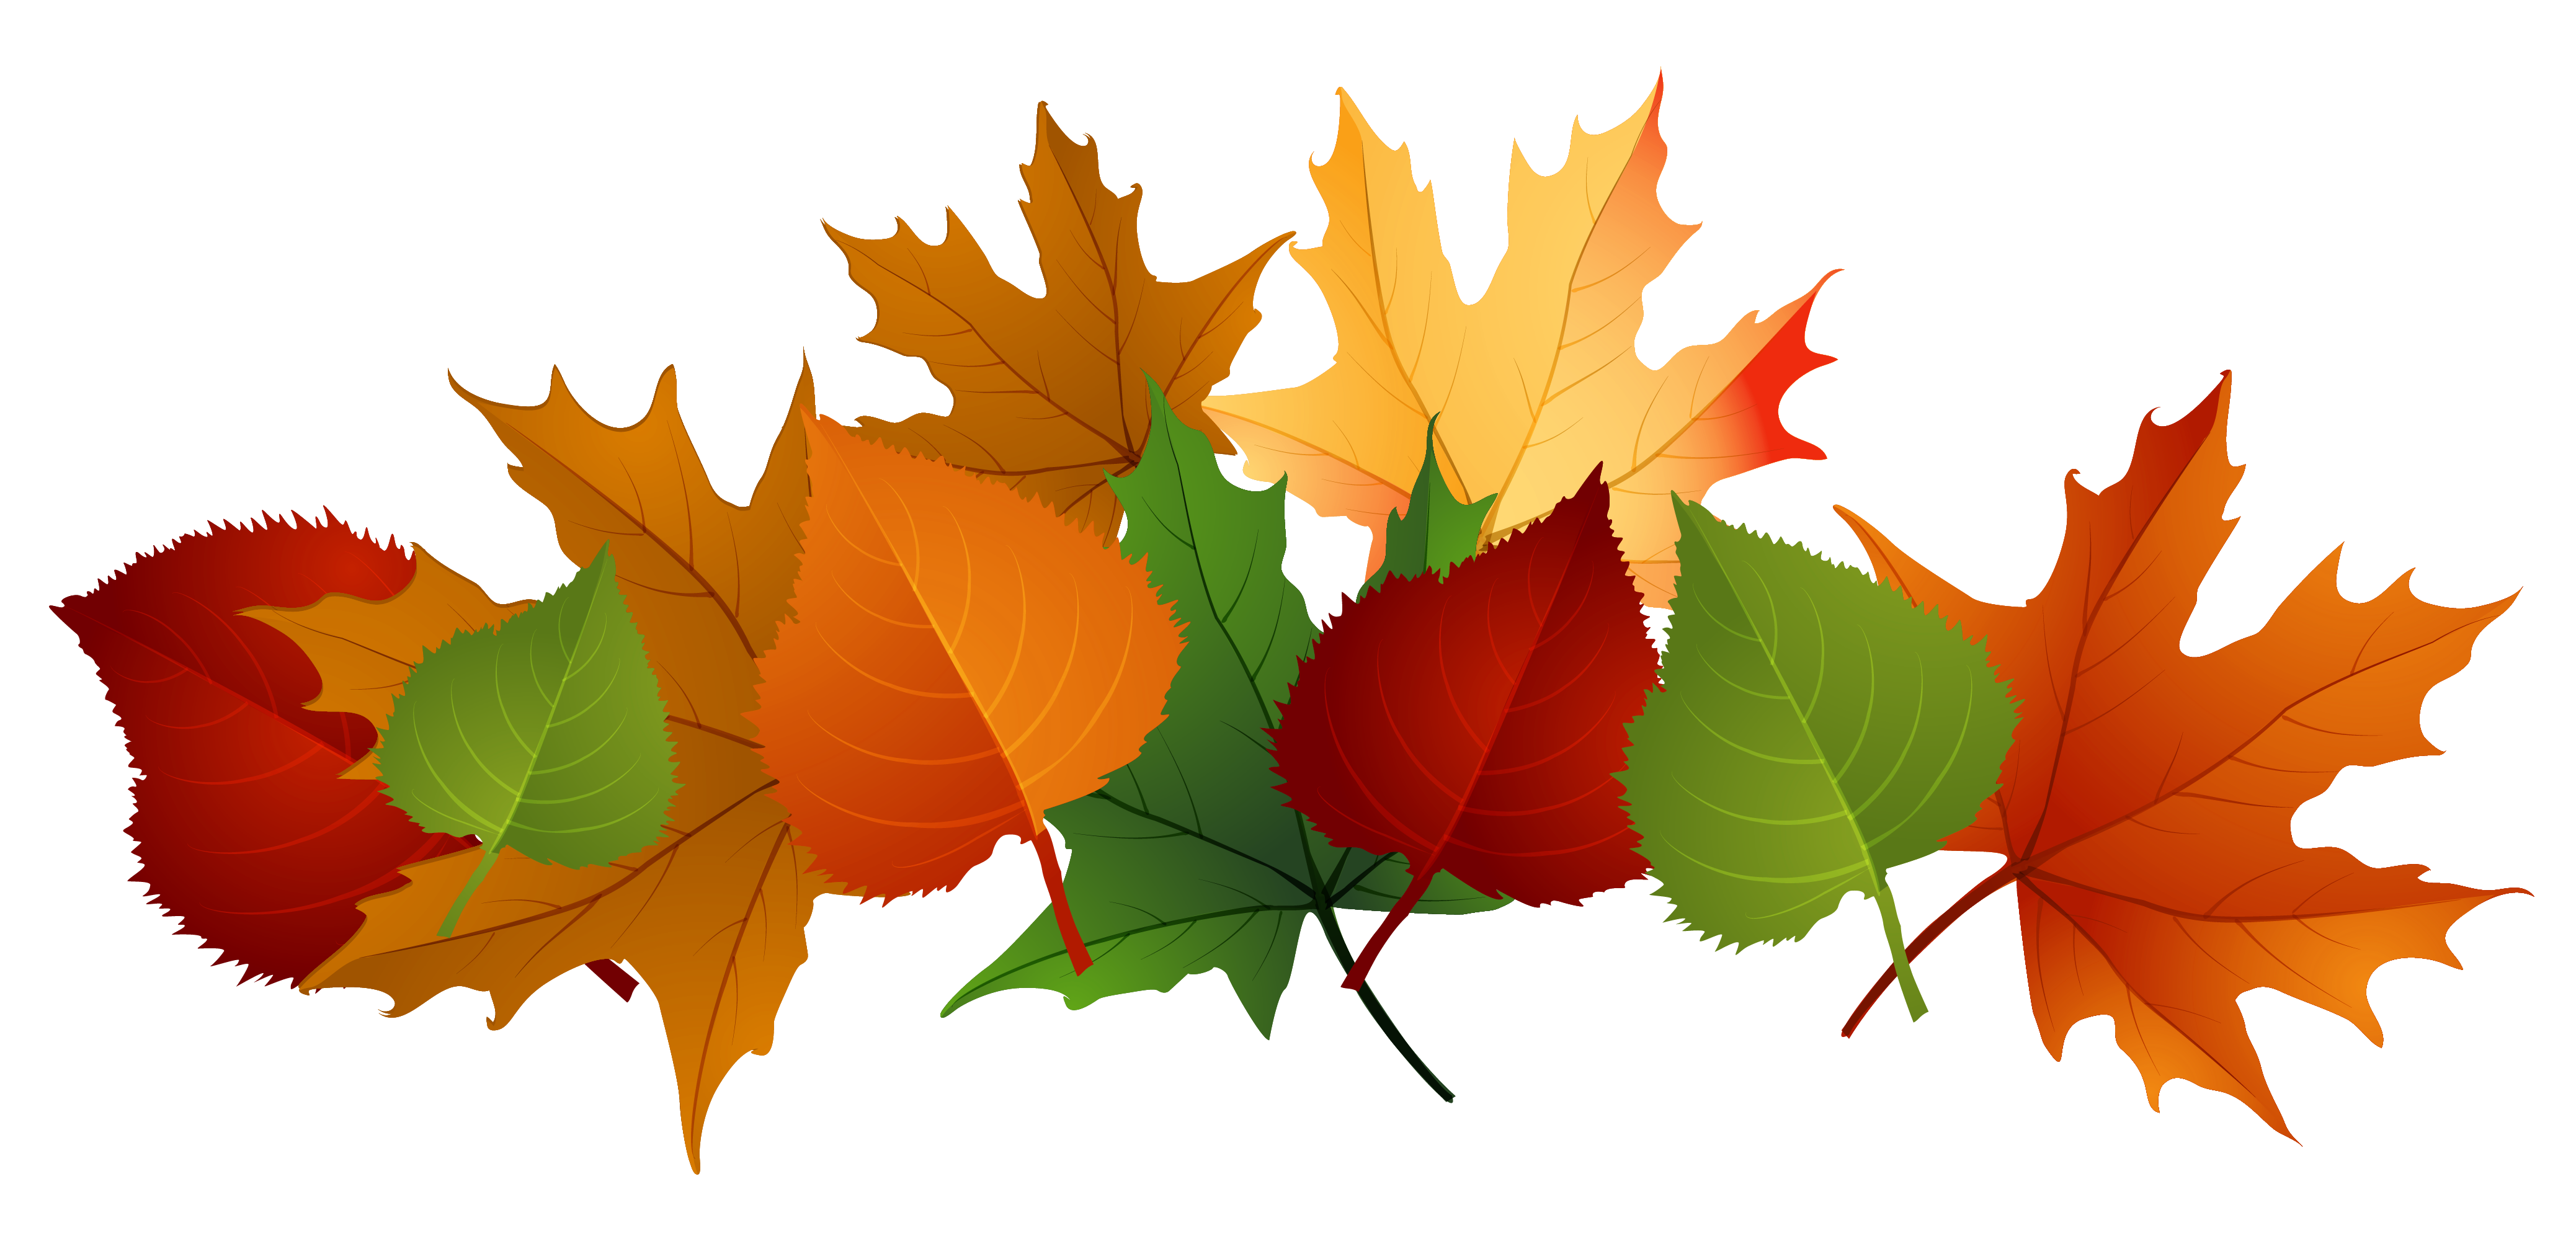 Fall leaves fall leaf clipart no background free images